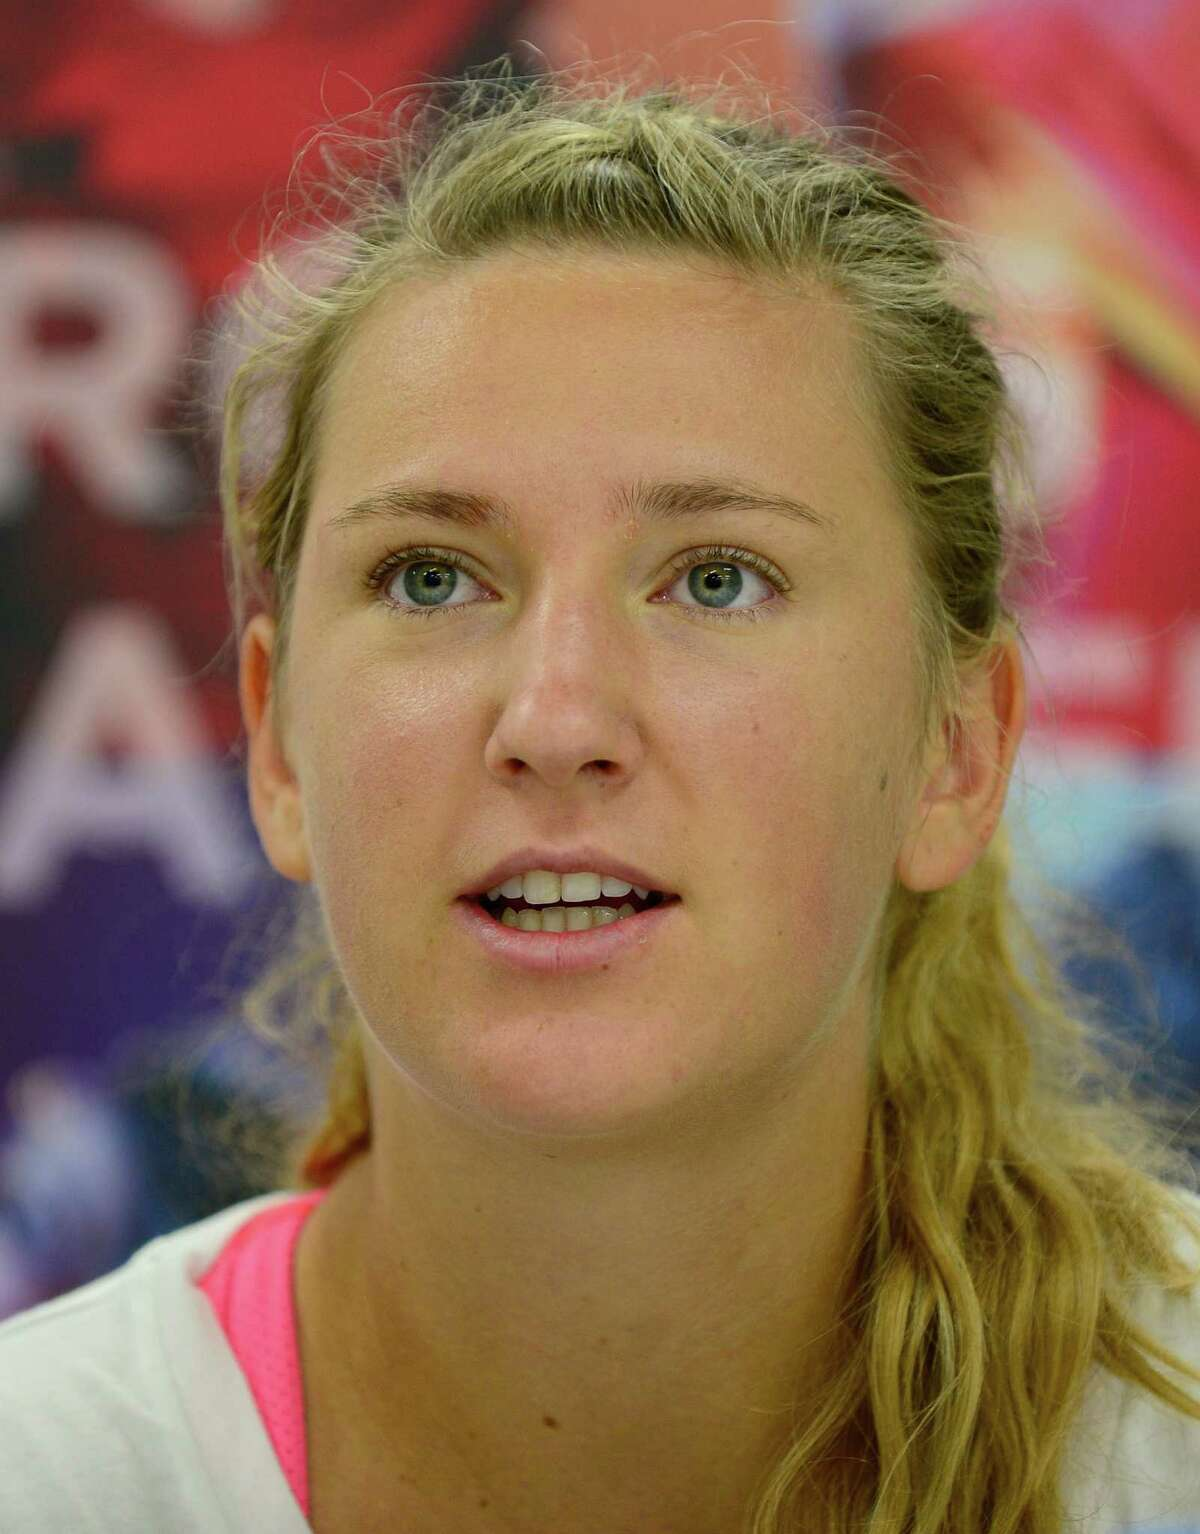 Belarus's tennis player Victoria Azarenka answers questions during the round table interview in the Pan Pacific Open tennis tournament in Tokyo on September 22, 2013. AFP PHOTO/Toru YAMANAKATORU YAMANAKA/AFP/Getty Images